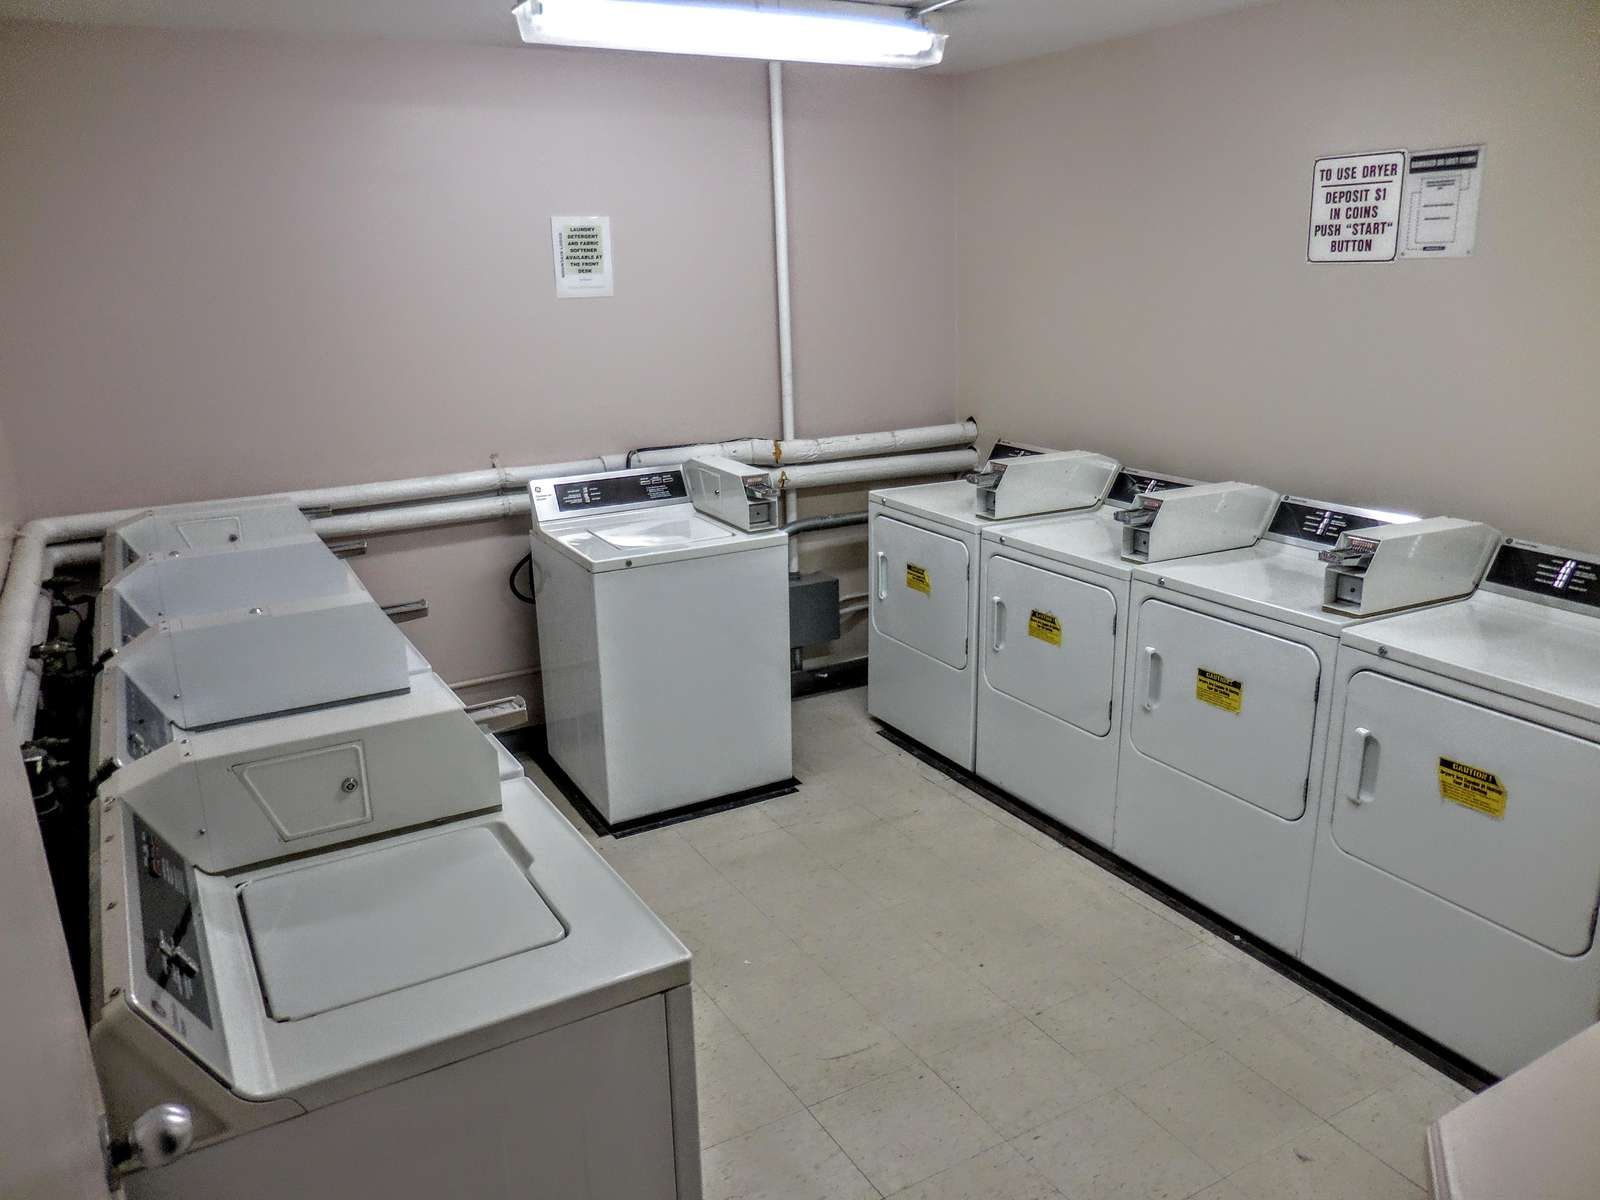 Coin-operated laundry facilities located down the hall from ML168